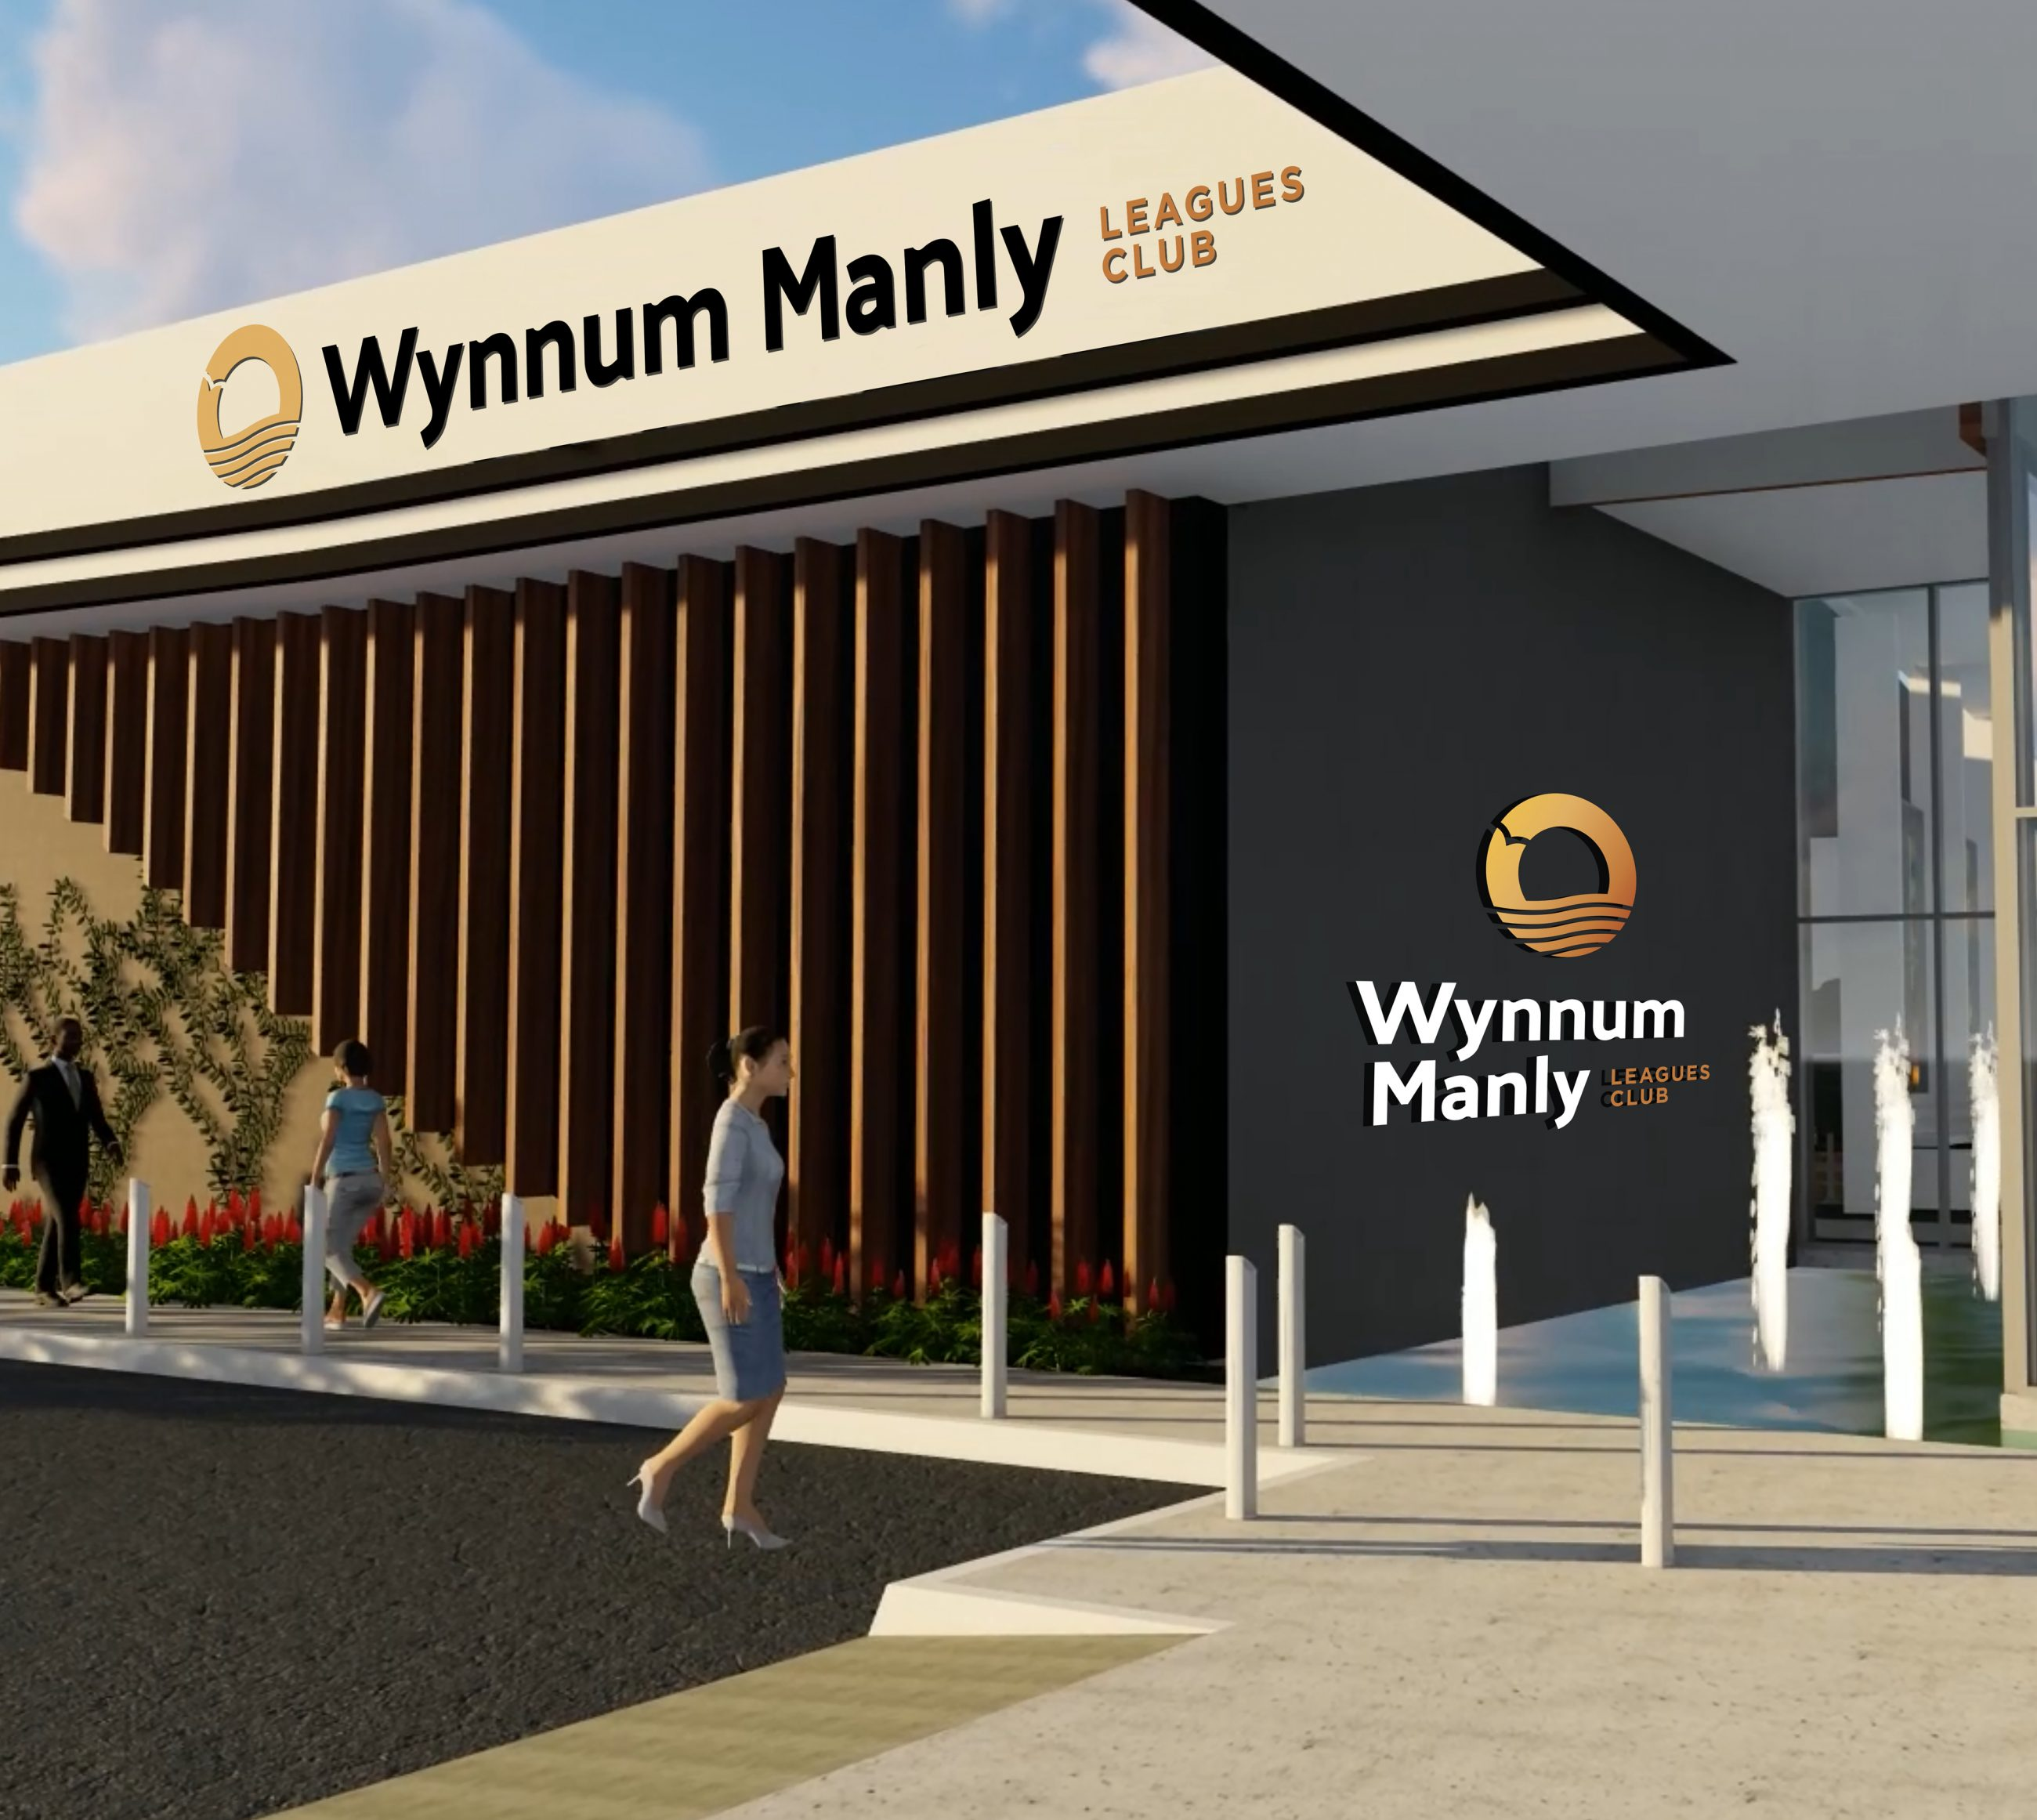 Wynnum Manly Leagues Club mockup images of new brand signage